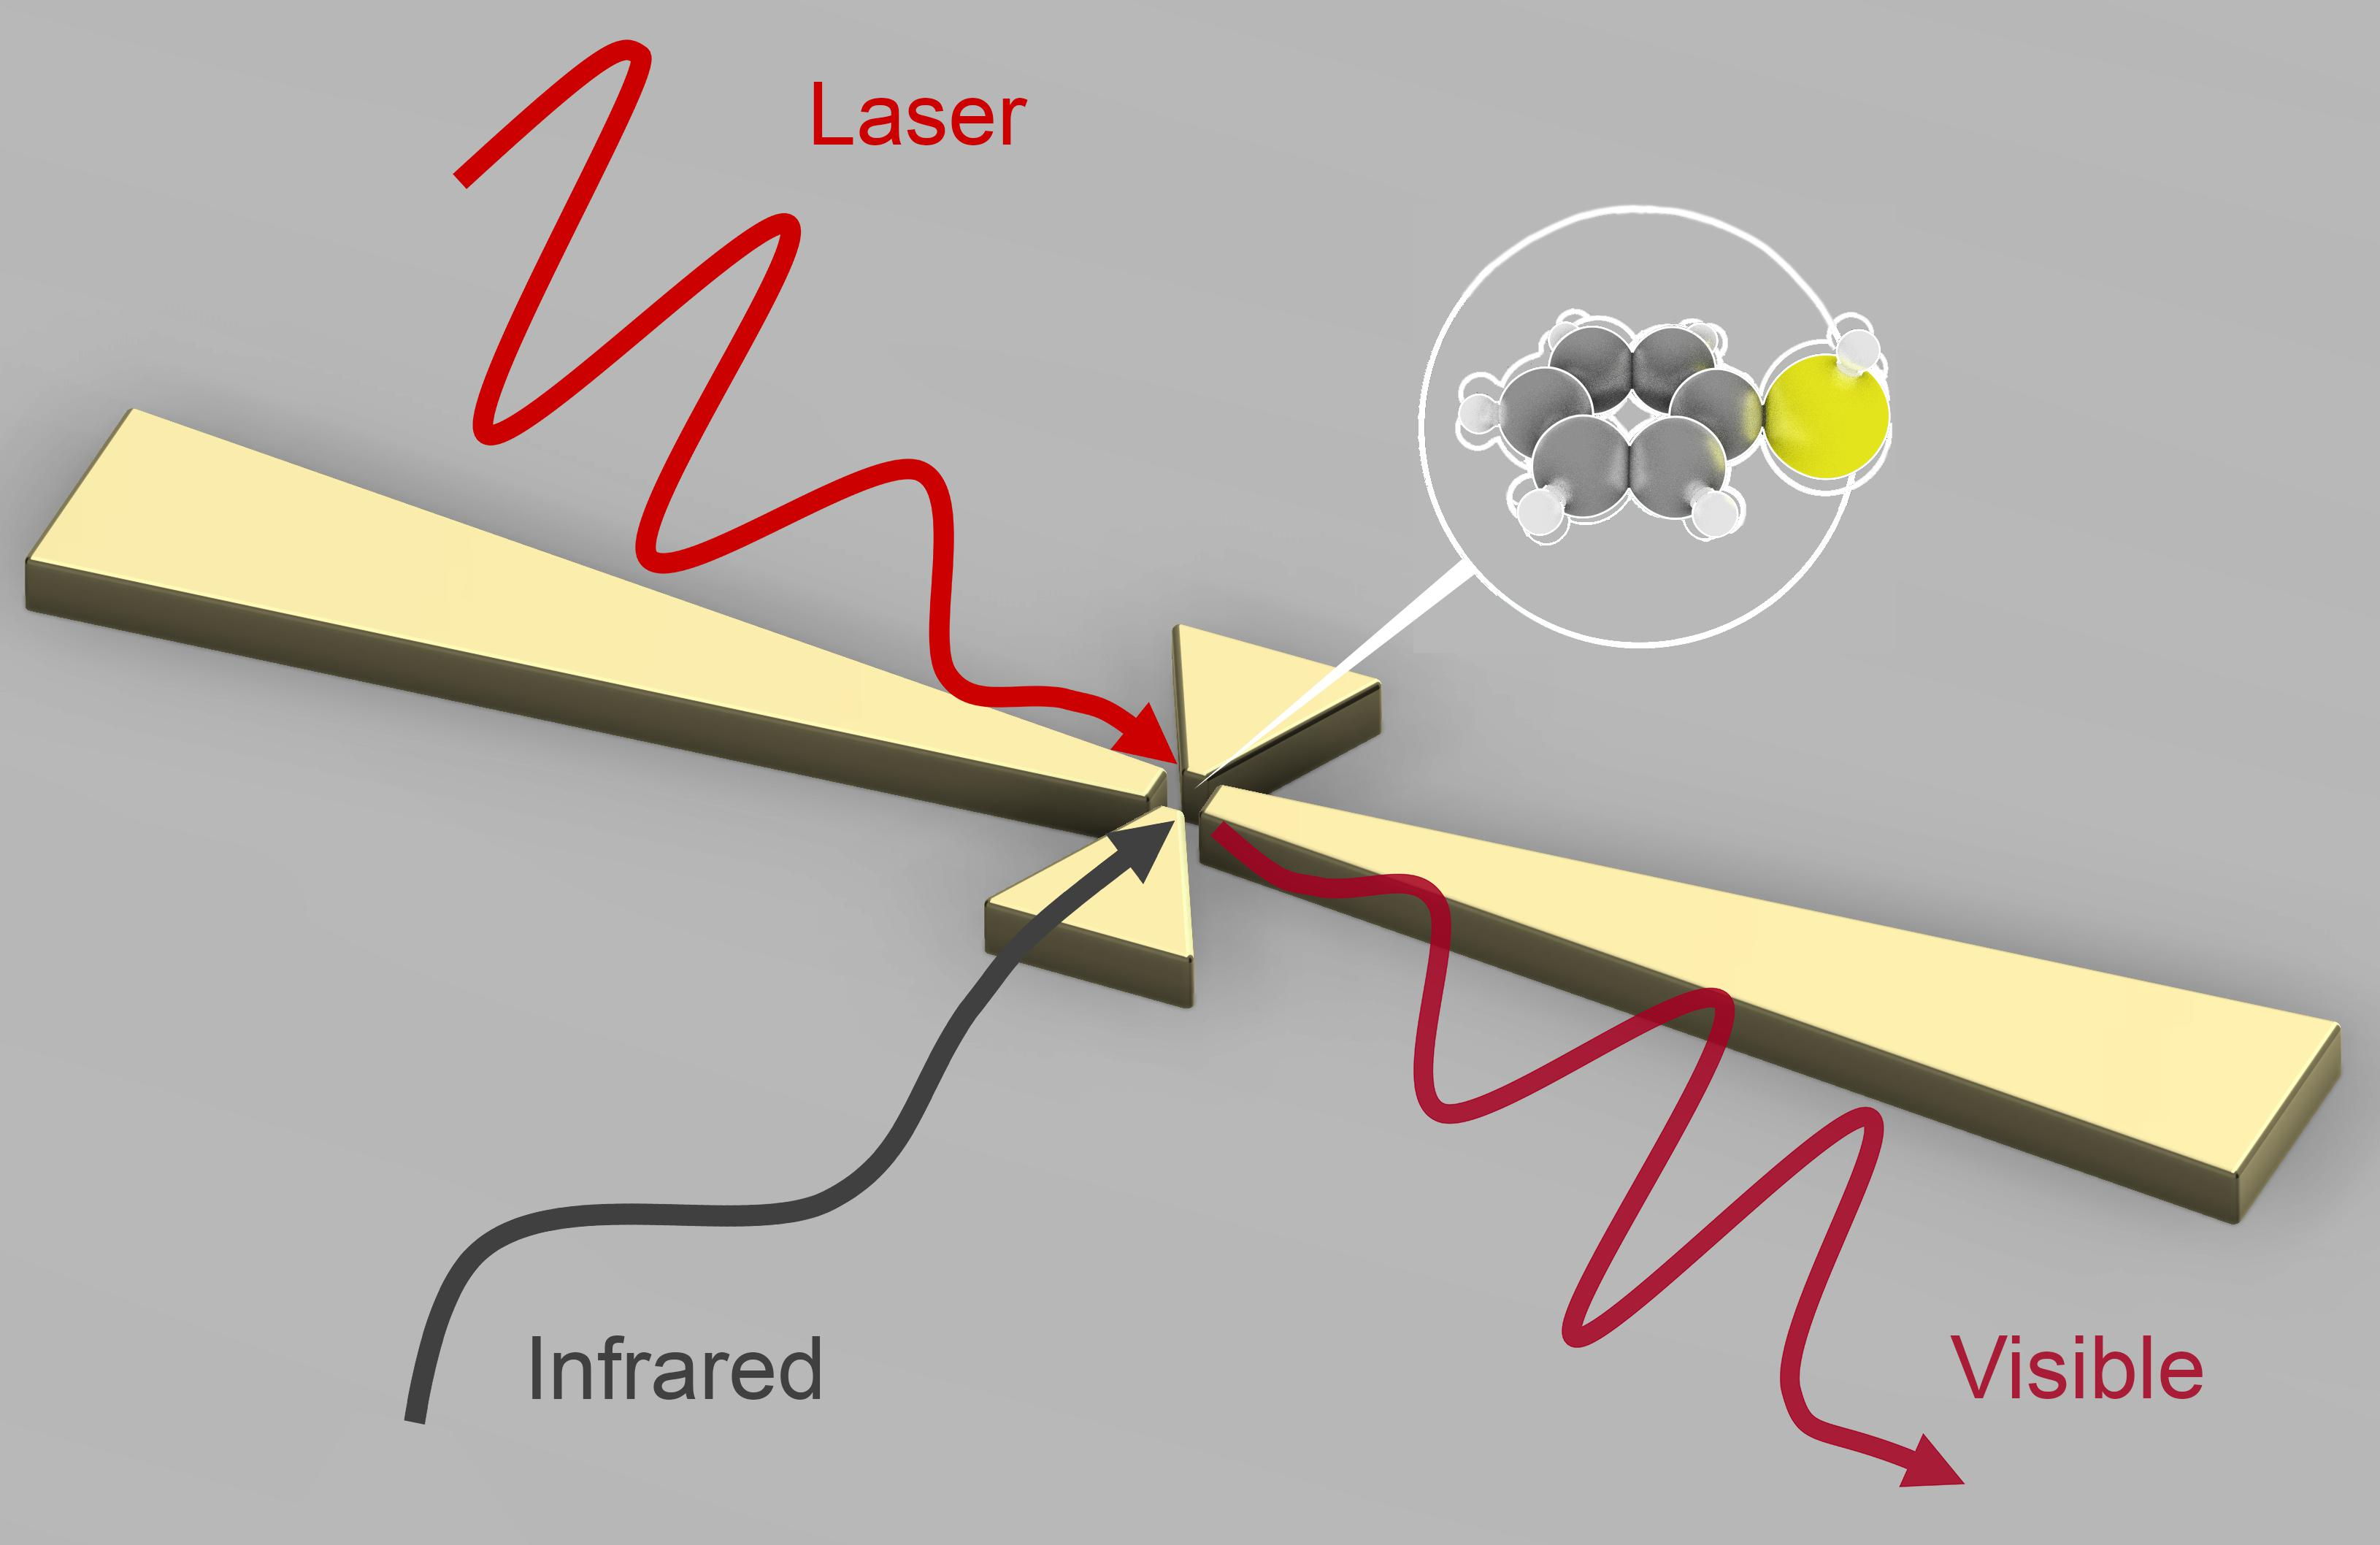 Lighting the way to infrared detection